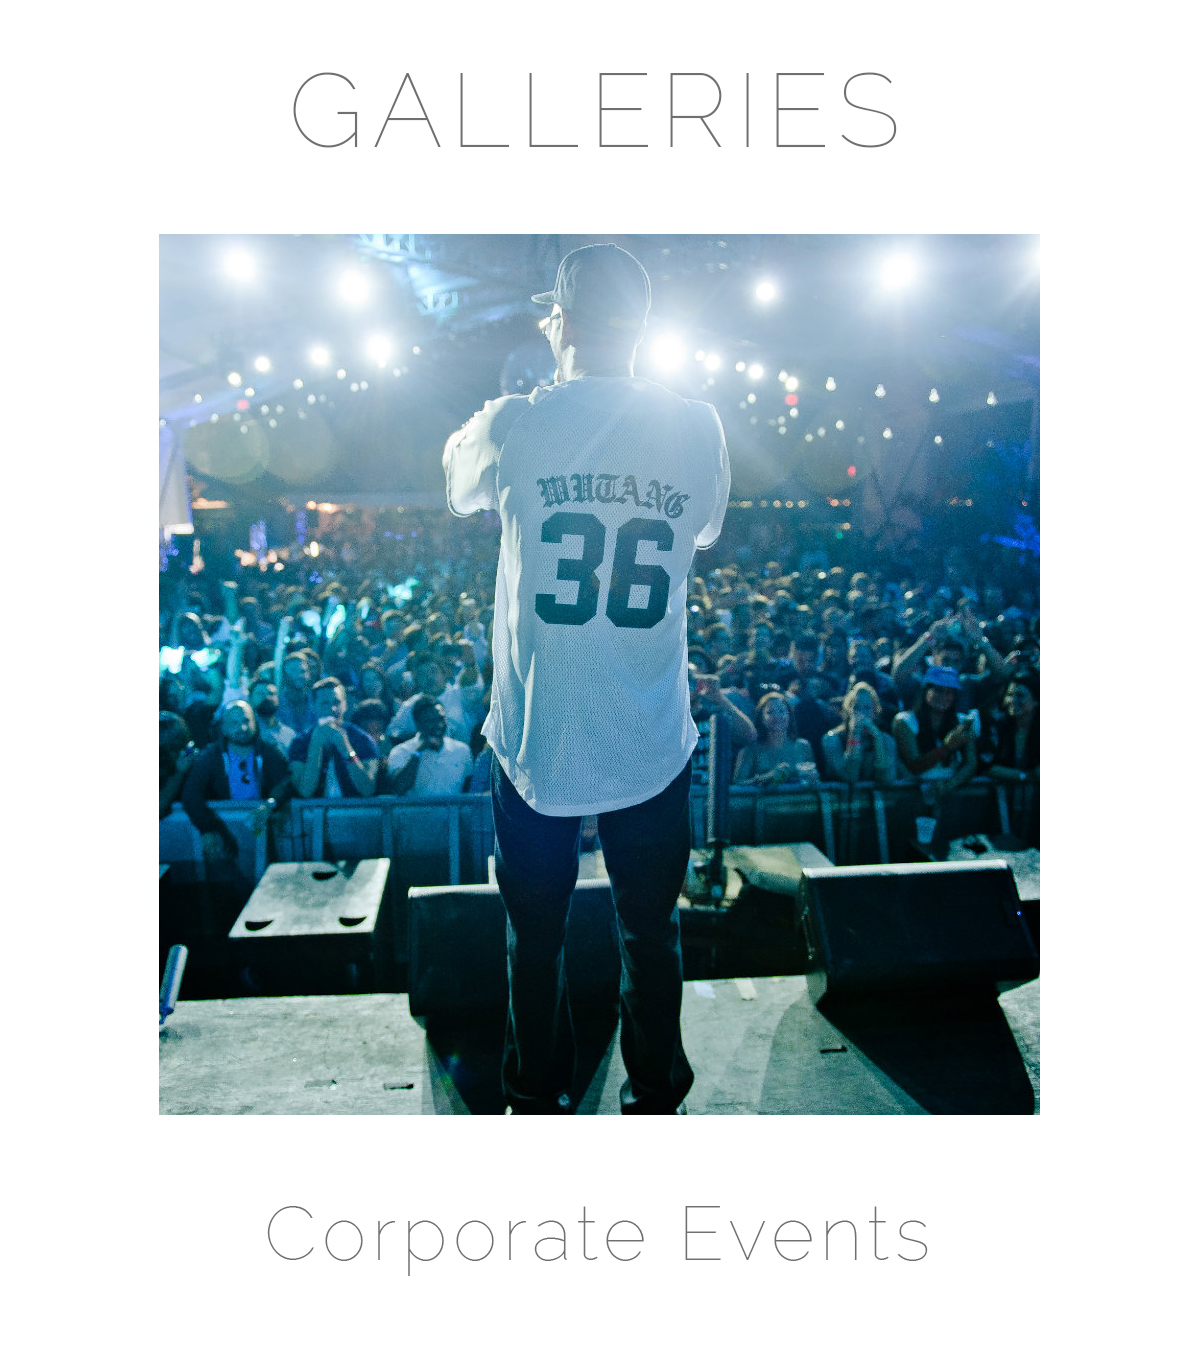 corporate-events-01.jpg